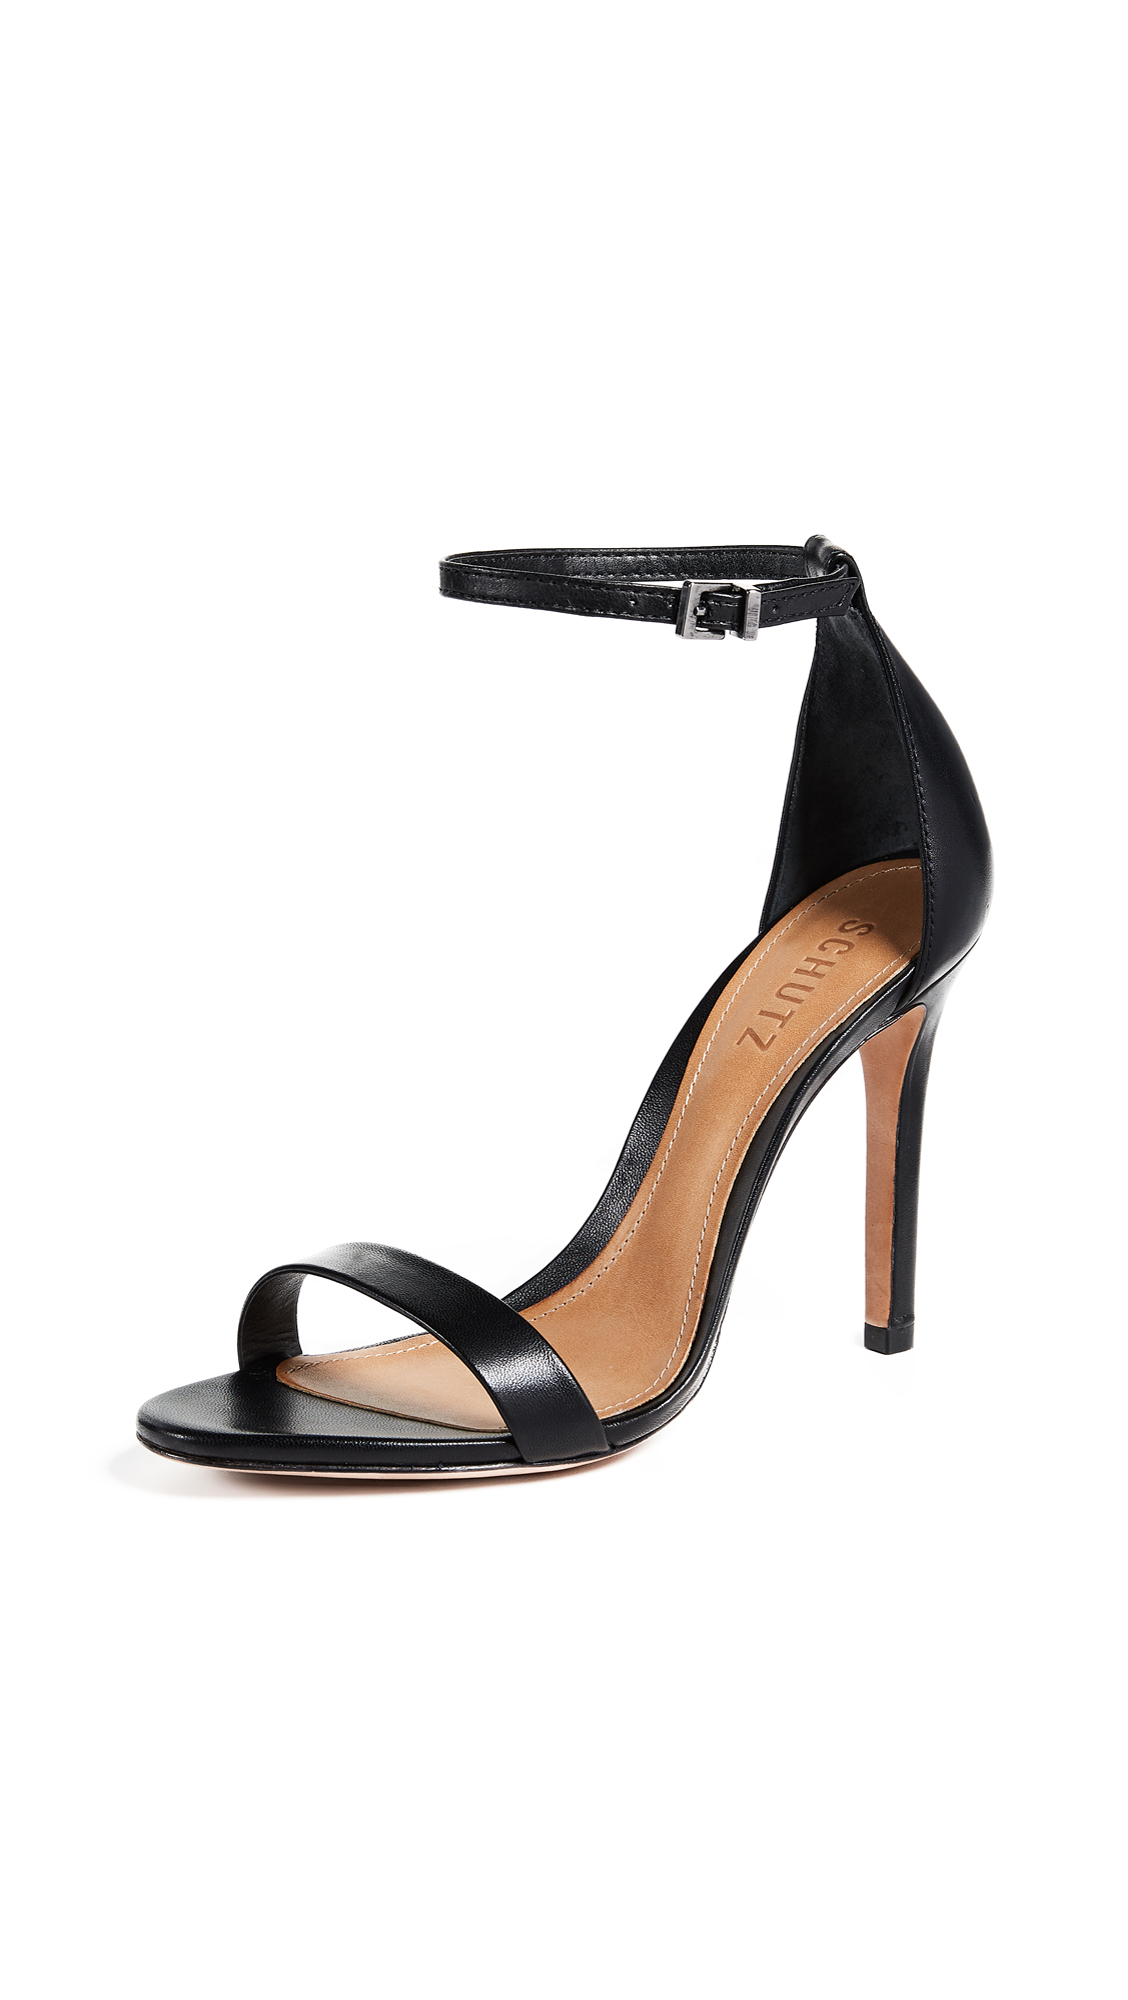 Schutz Cadey Lee Sandals - Black